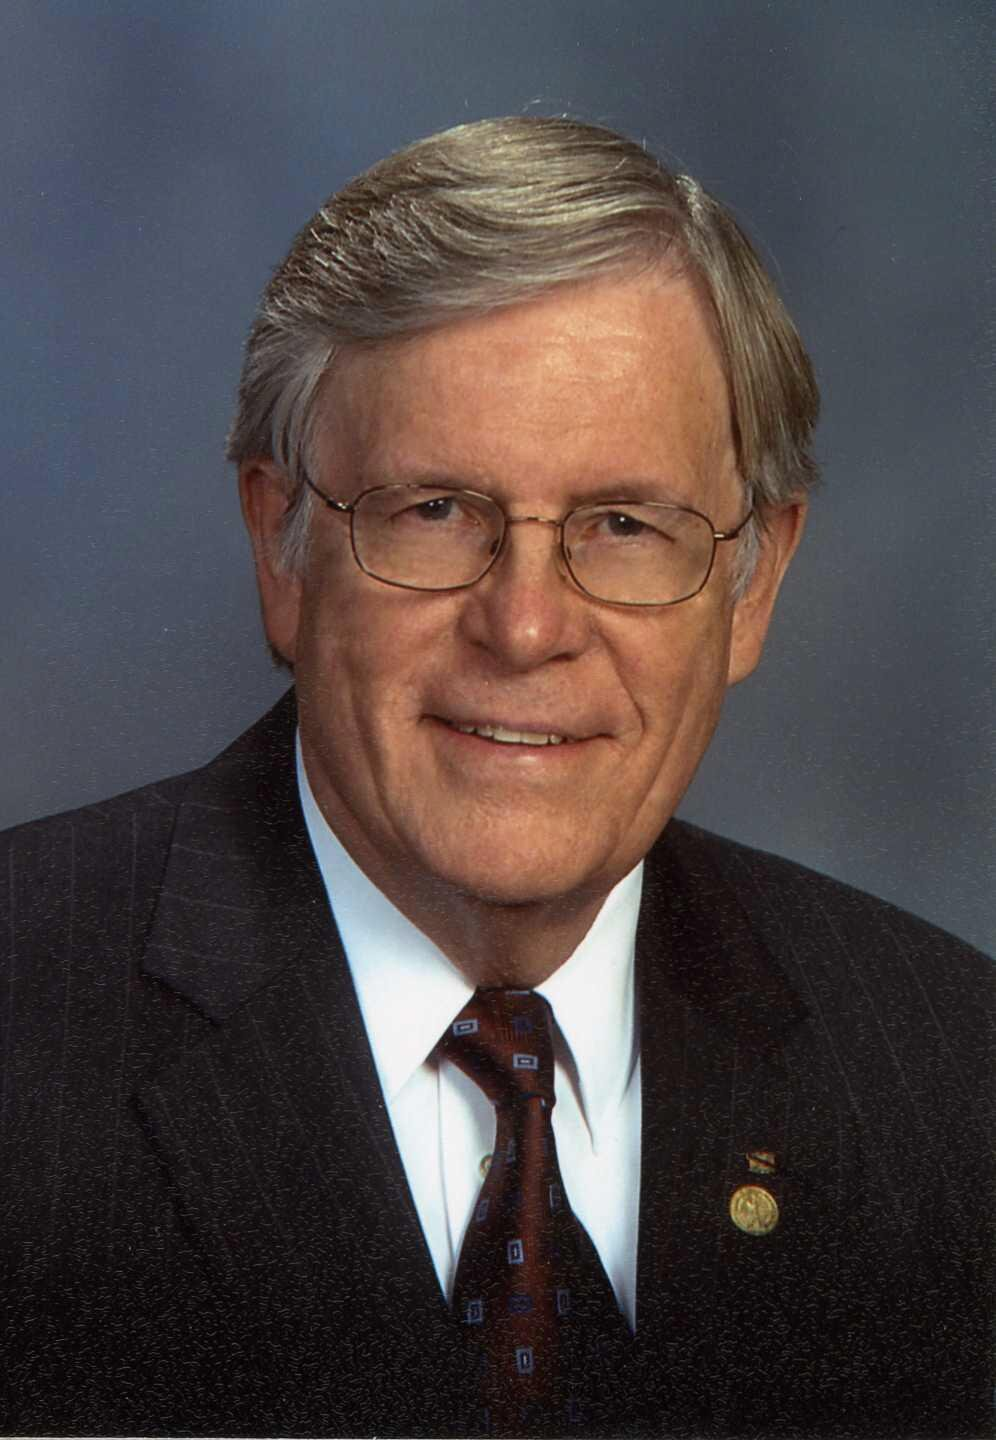 Dr. Richard Crain , President, The Midwest Clinic